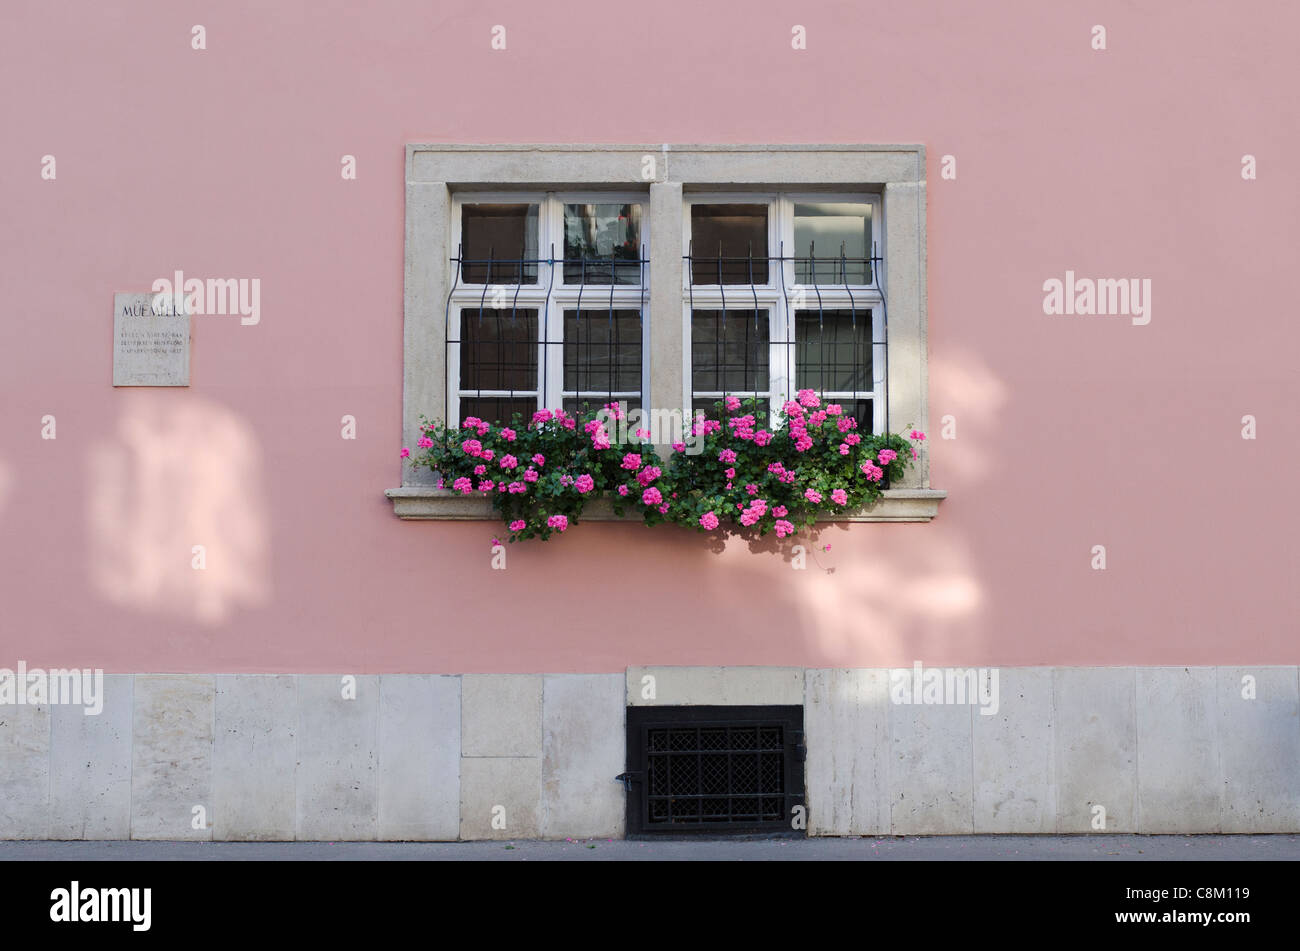 Window box in Vár-hegy, old Buda - Stock Image